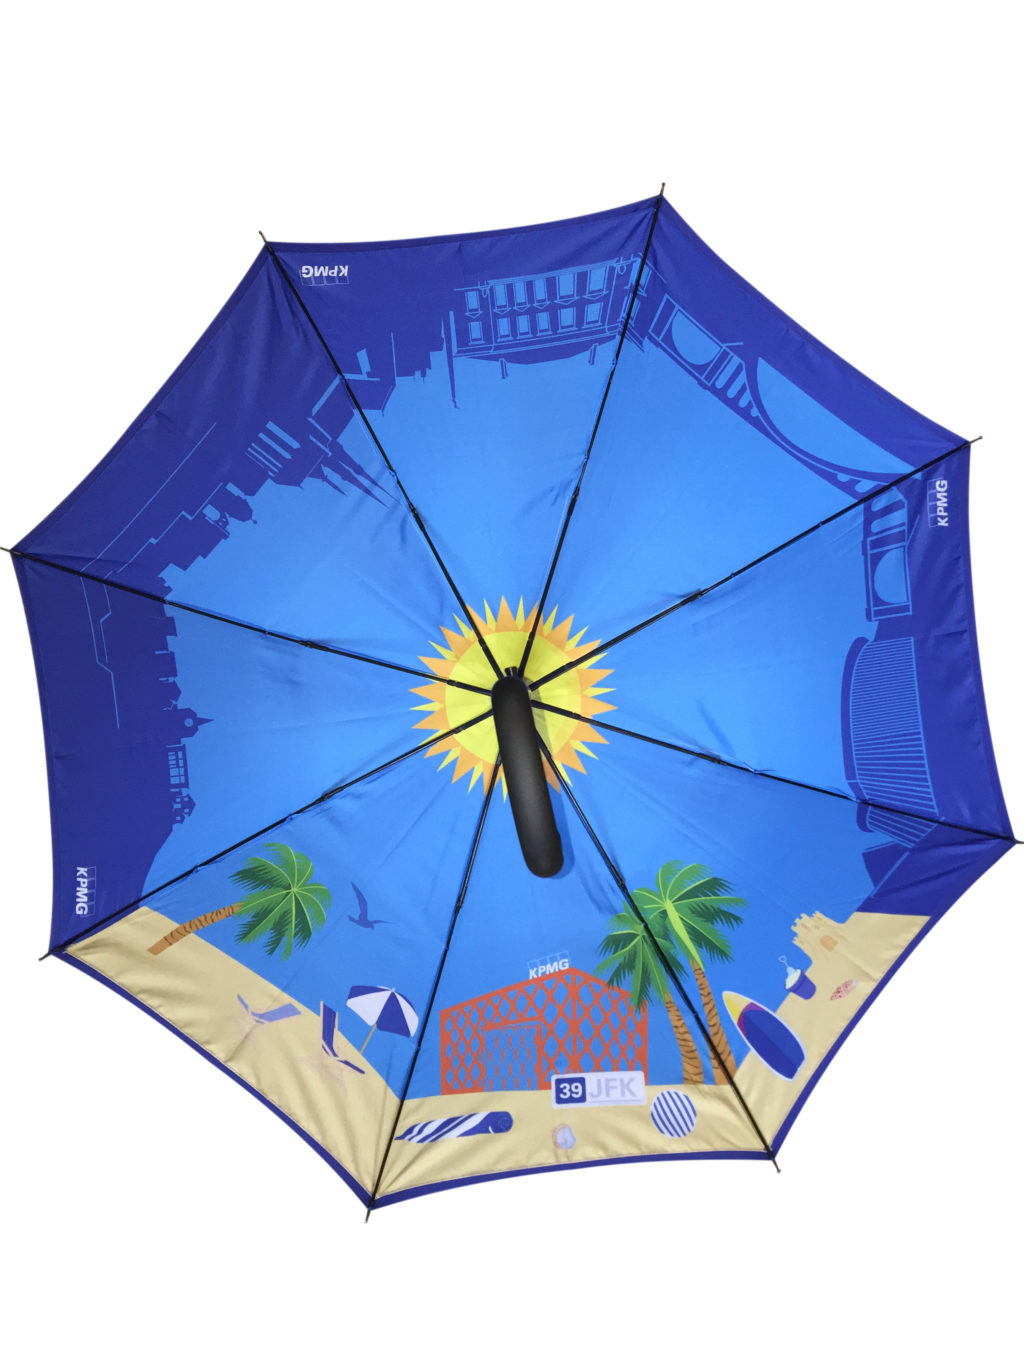 Cartoon beach scene on inside of customised umbrella